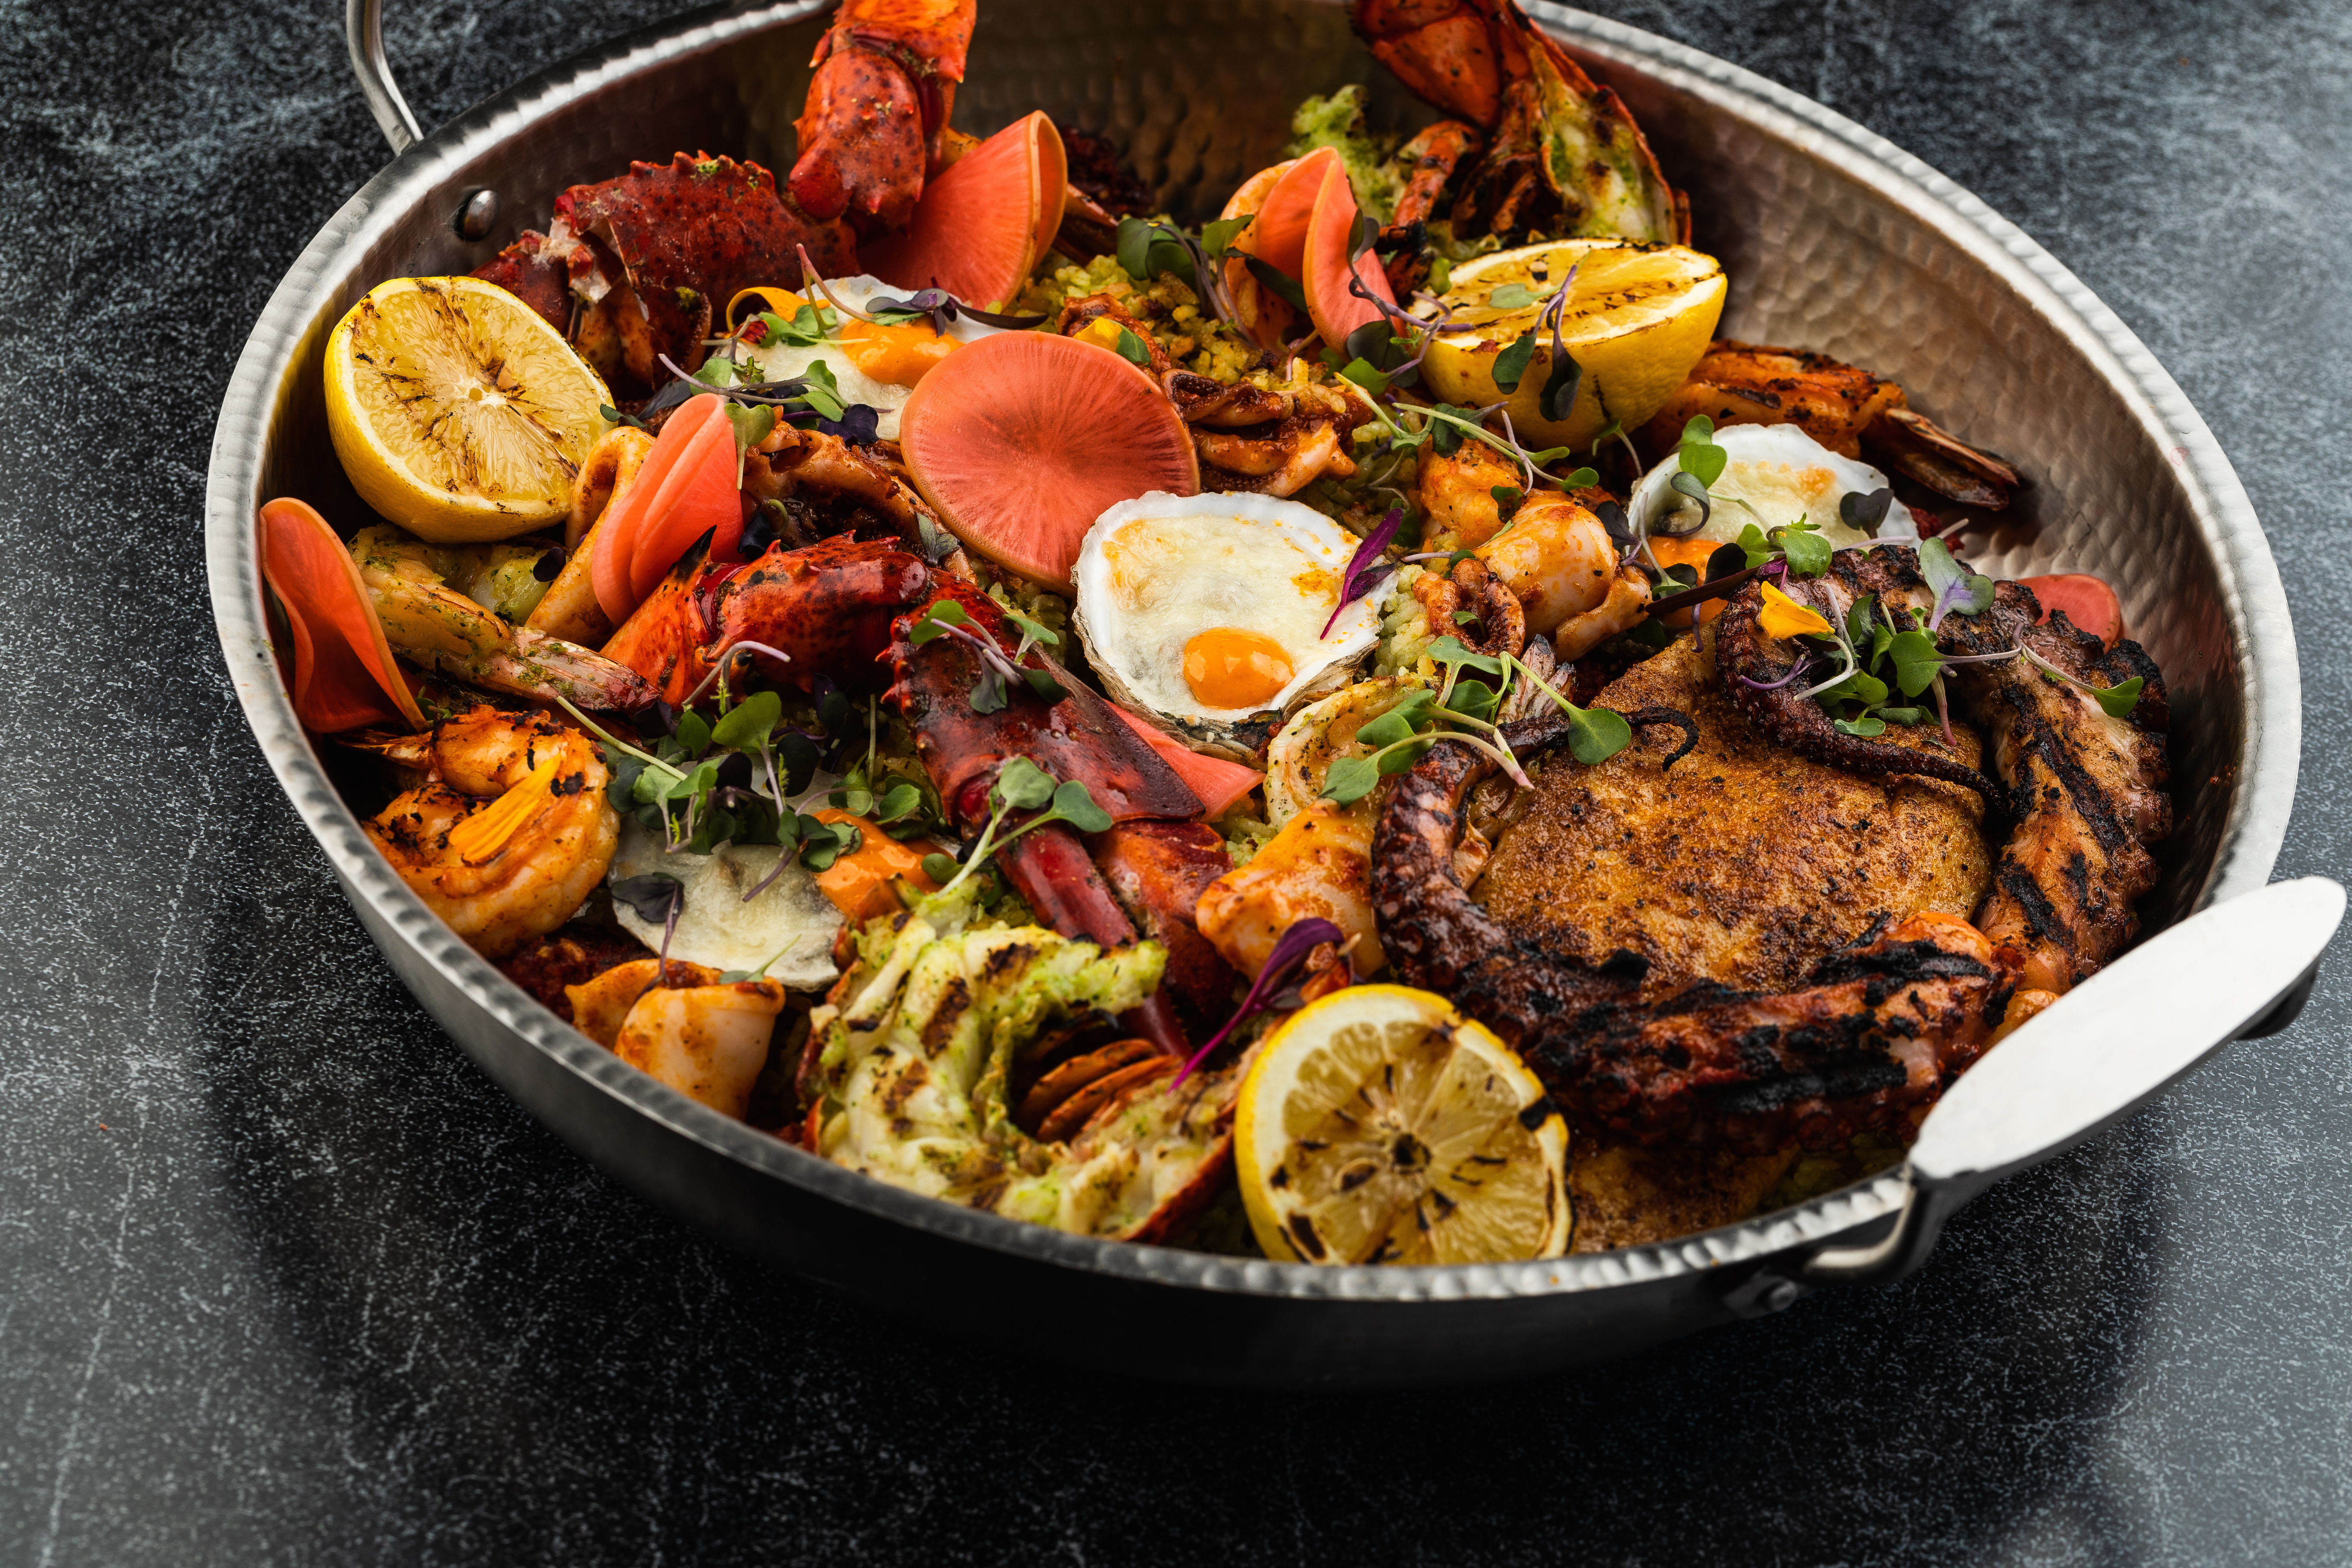 A pan with paella